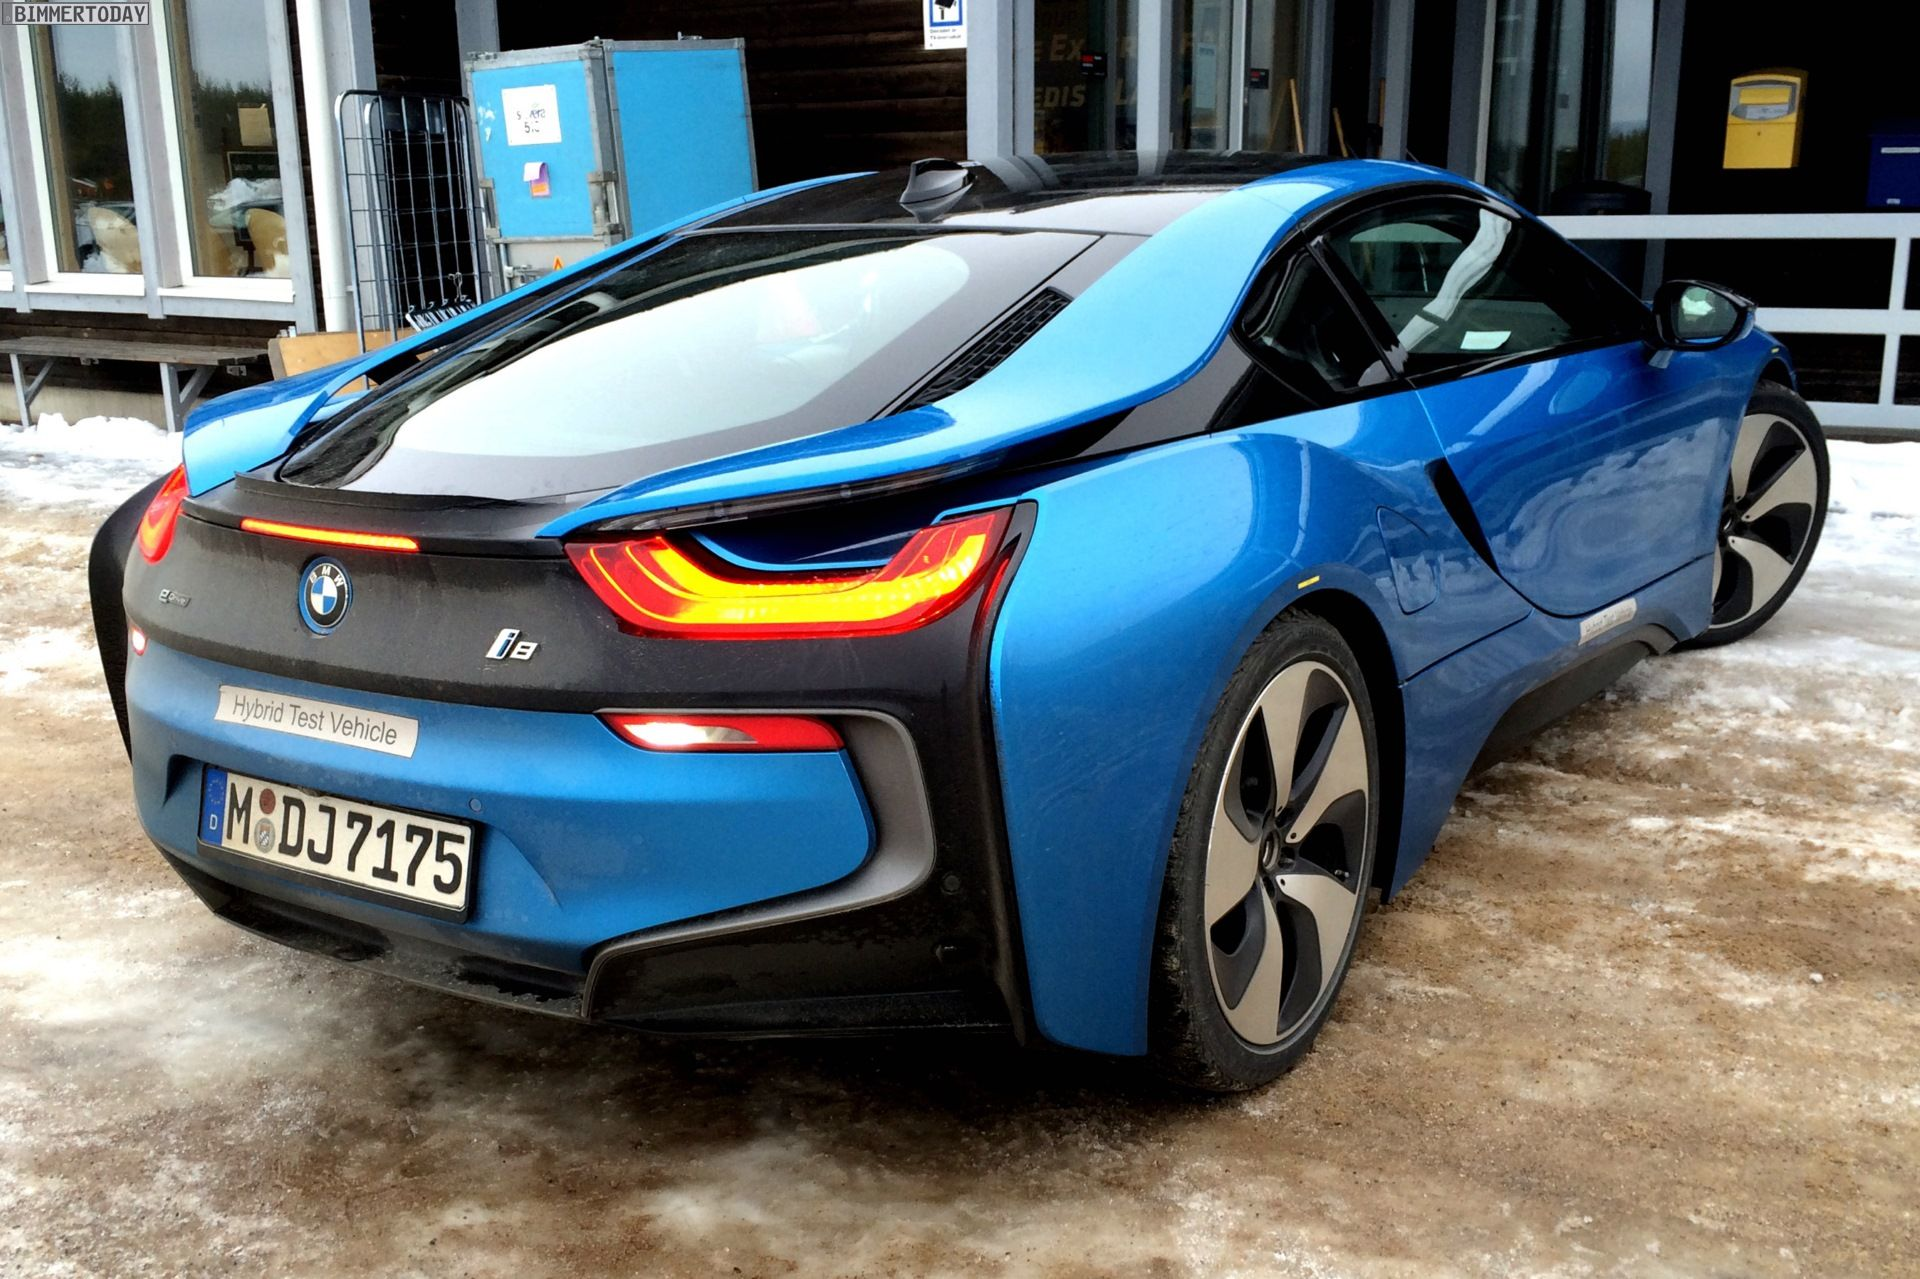 bmw i8 - google search | cars - photoreal | pinterest | bmw i8